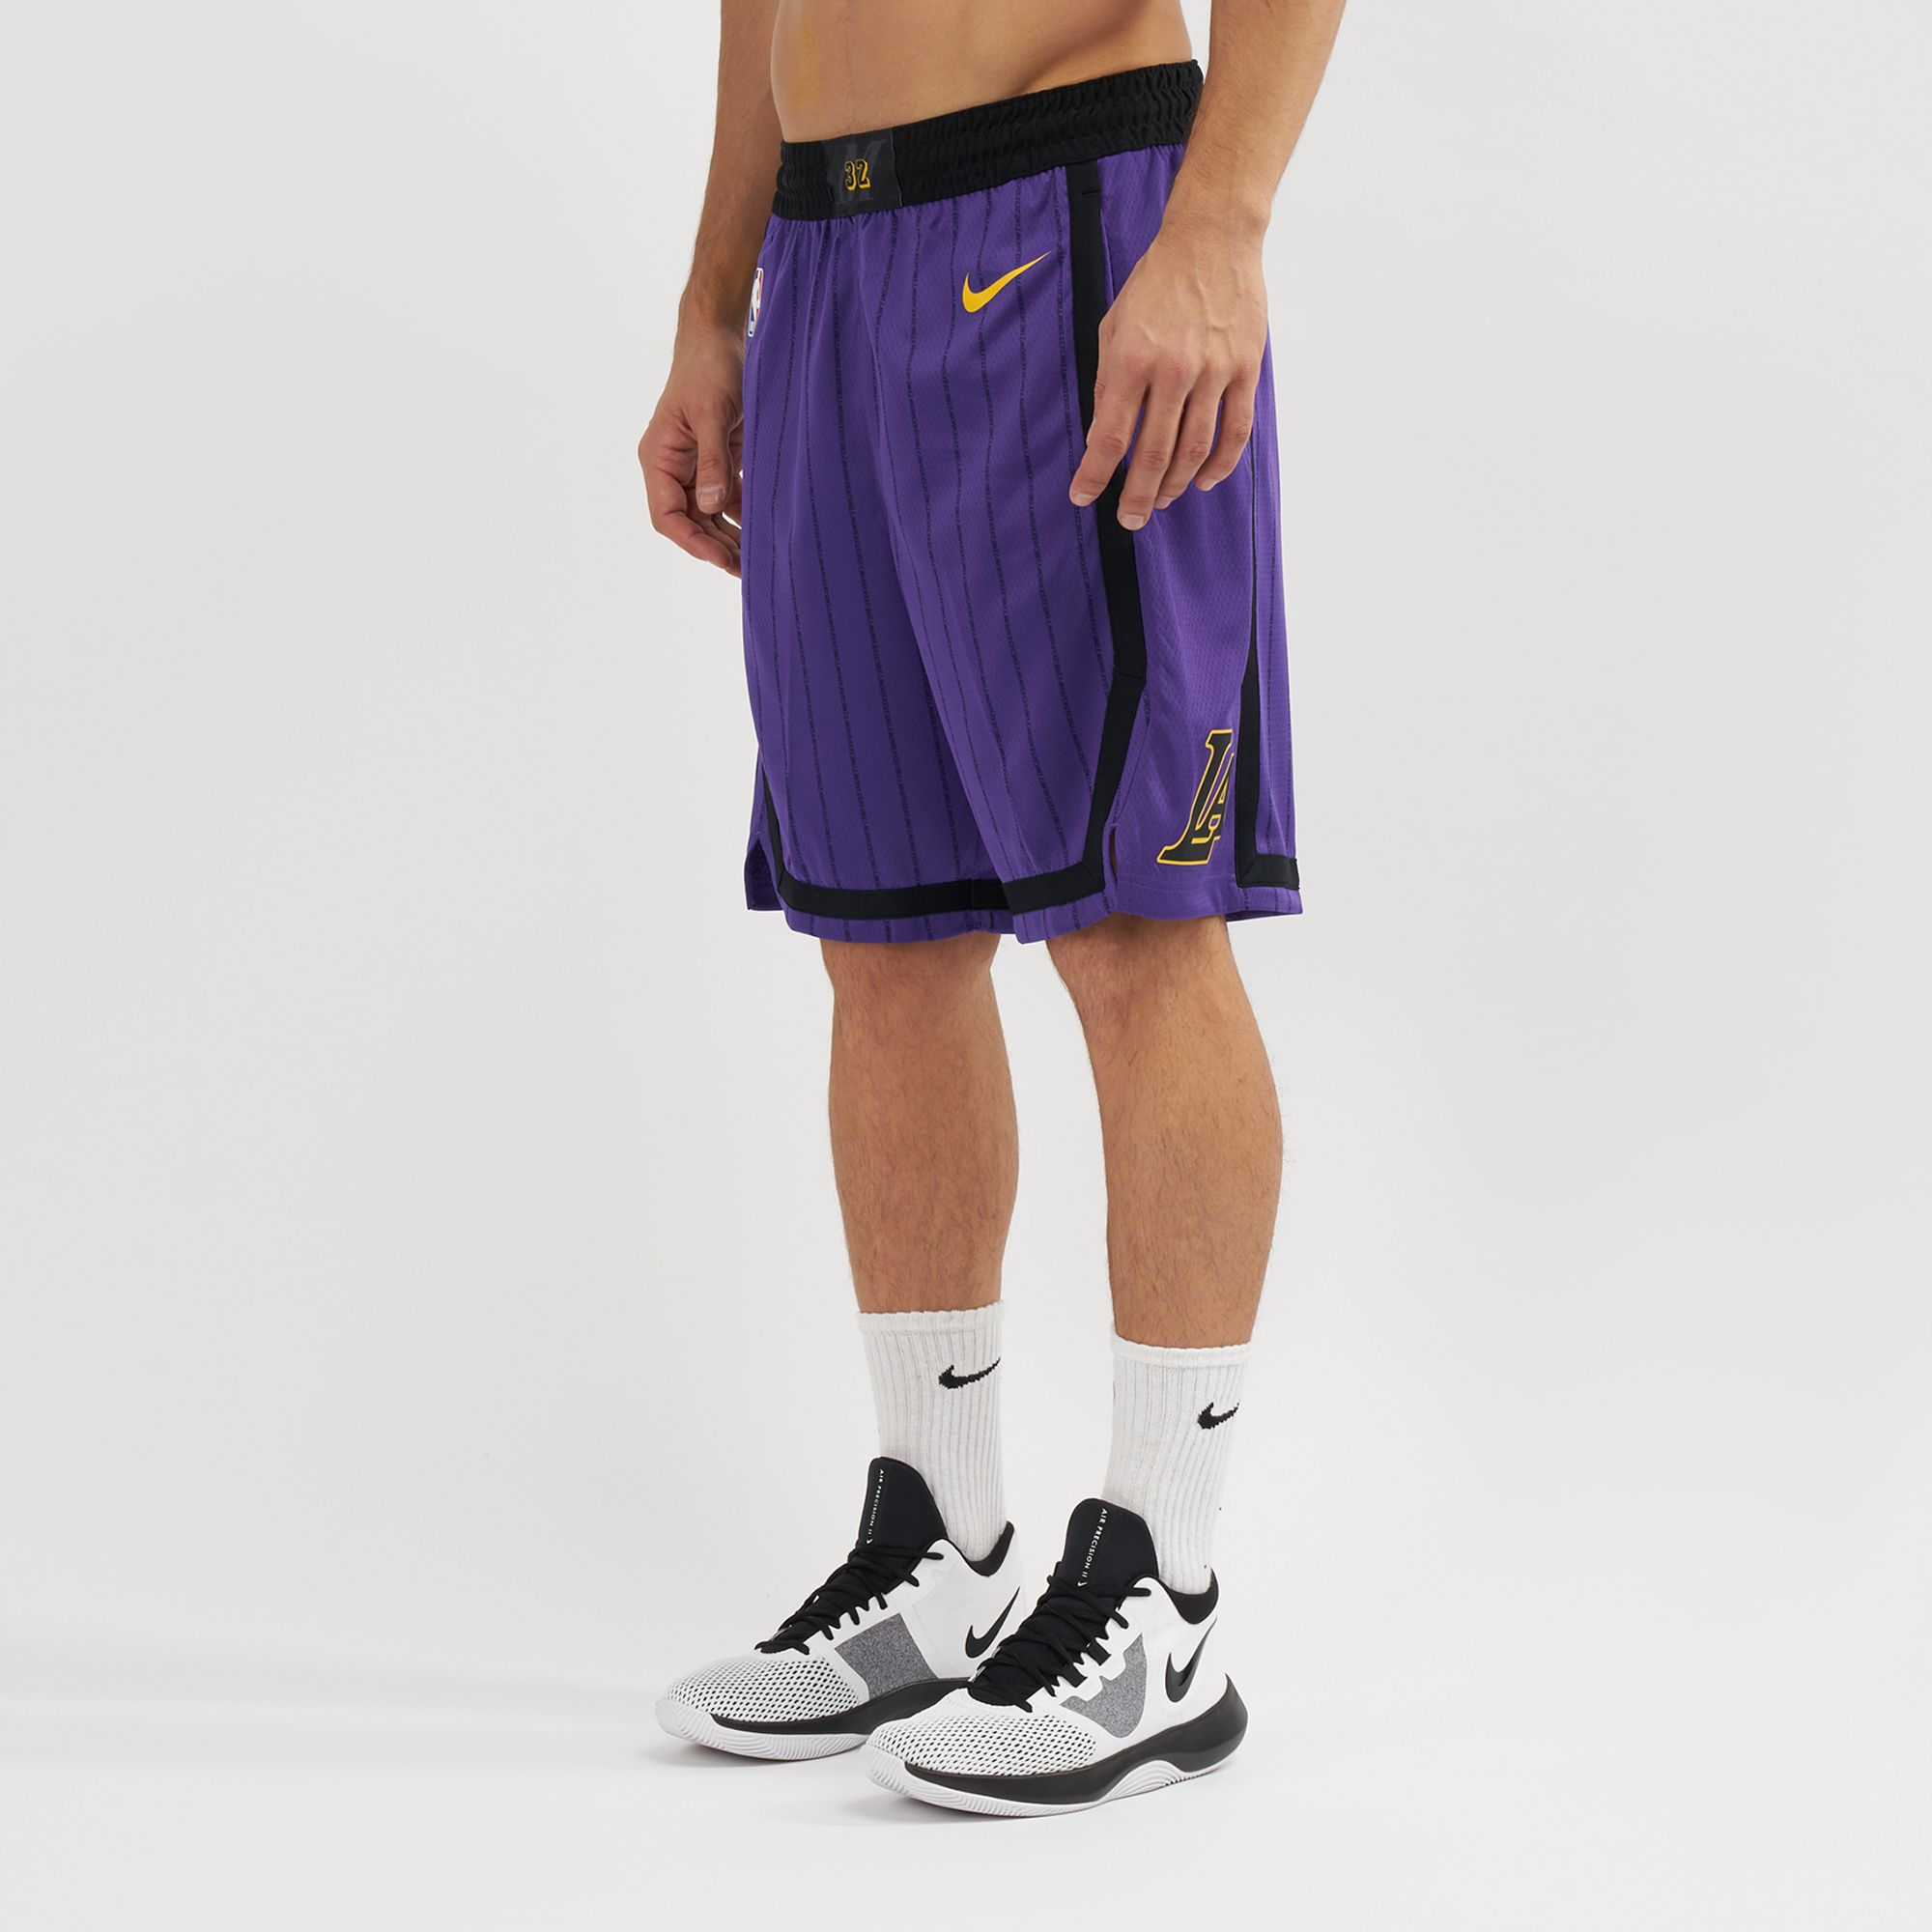 308394224ba Nike NBA Los Angeles Lakers Swingman City Edition Shorts - 2018 ...